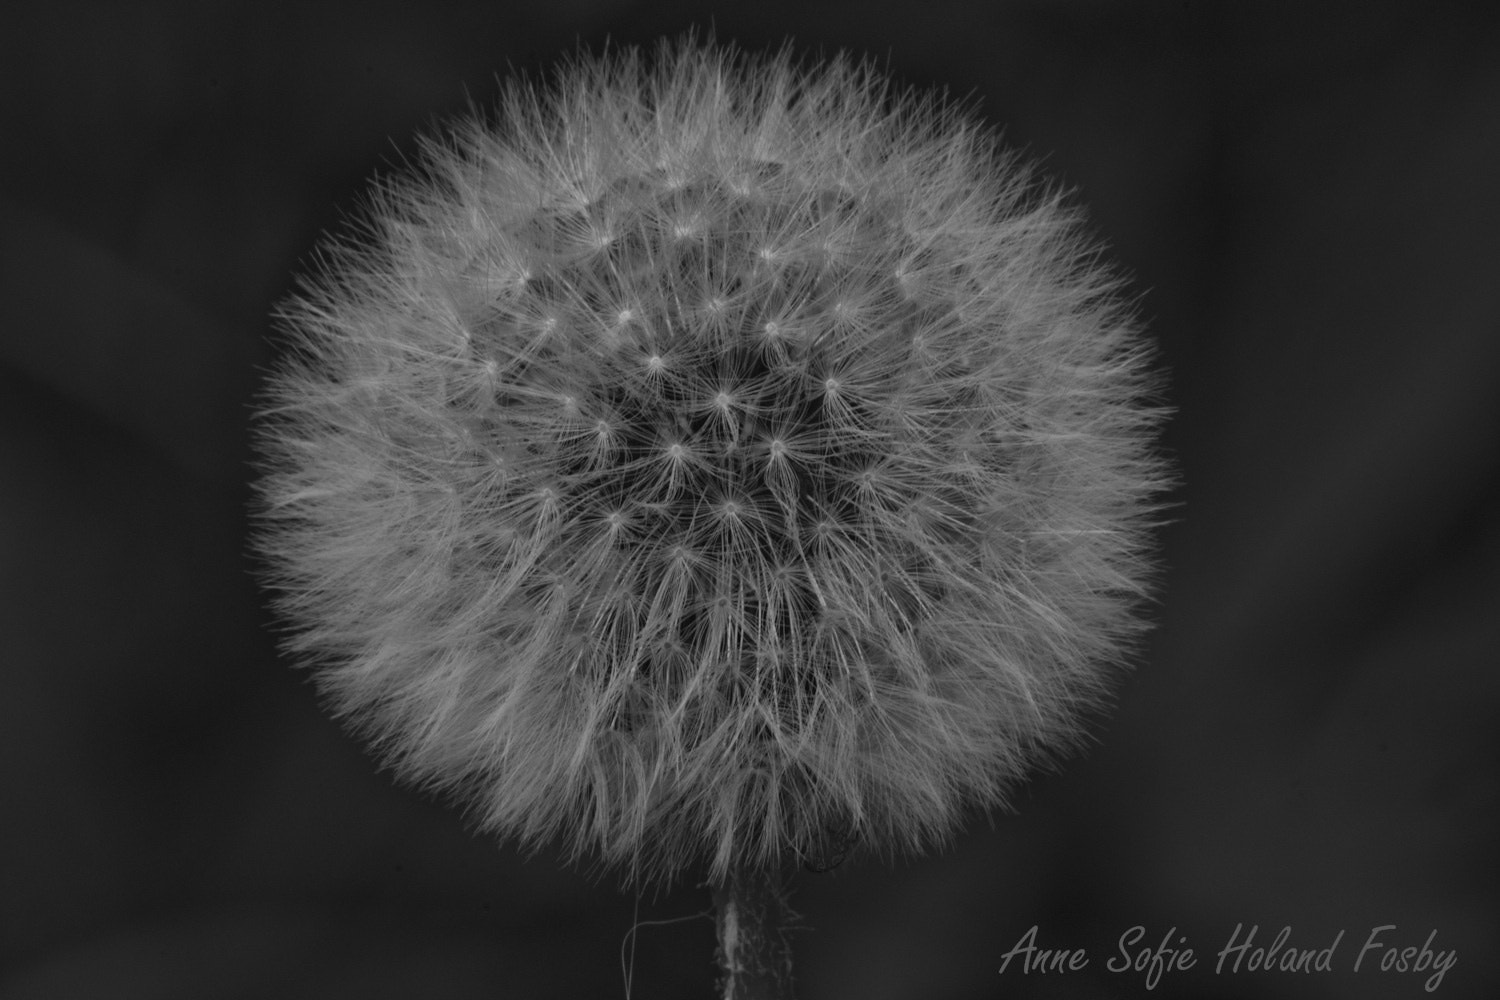 Photograph Untitled by Anne Sofie Fosby on 500px